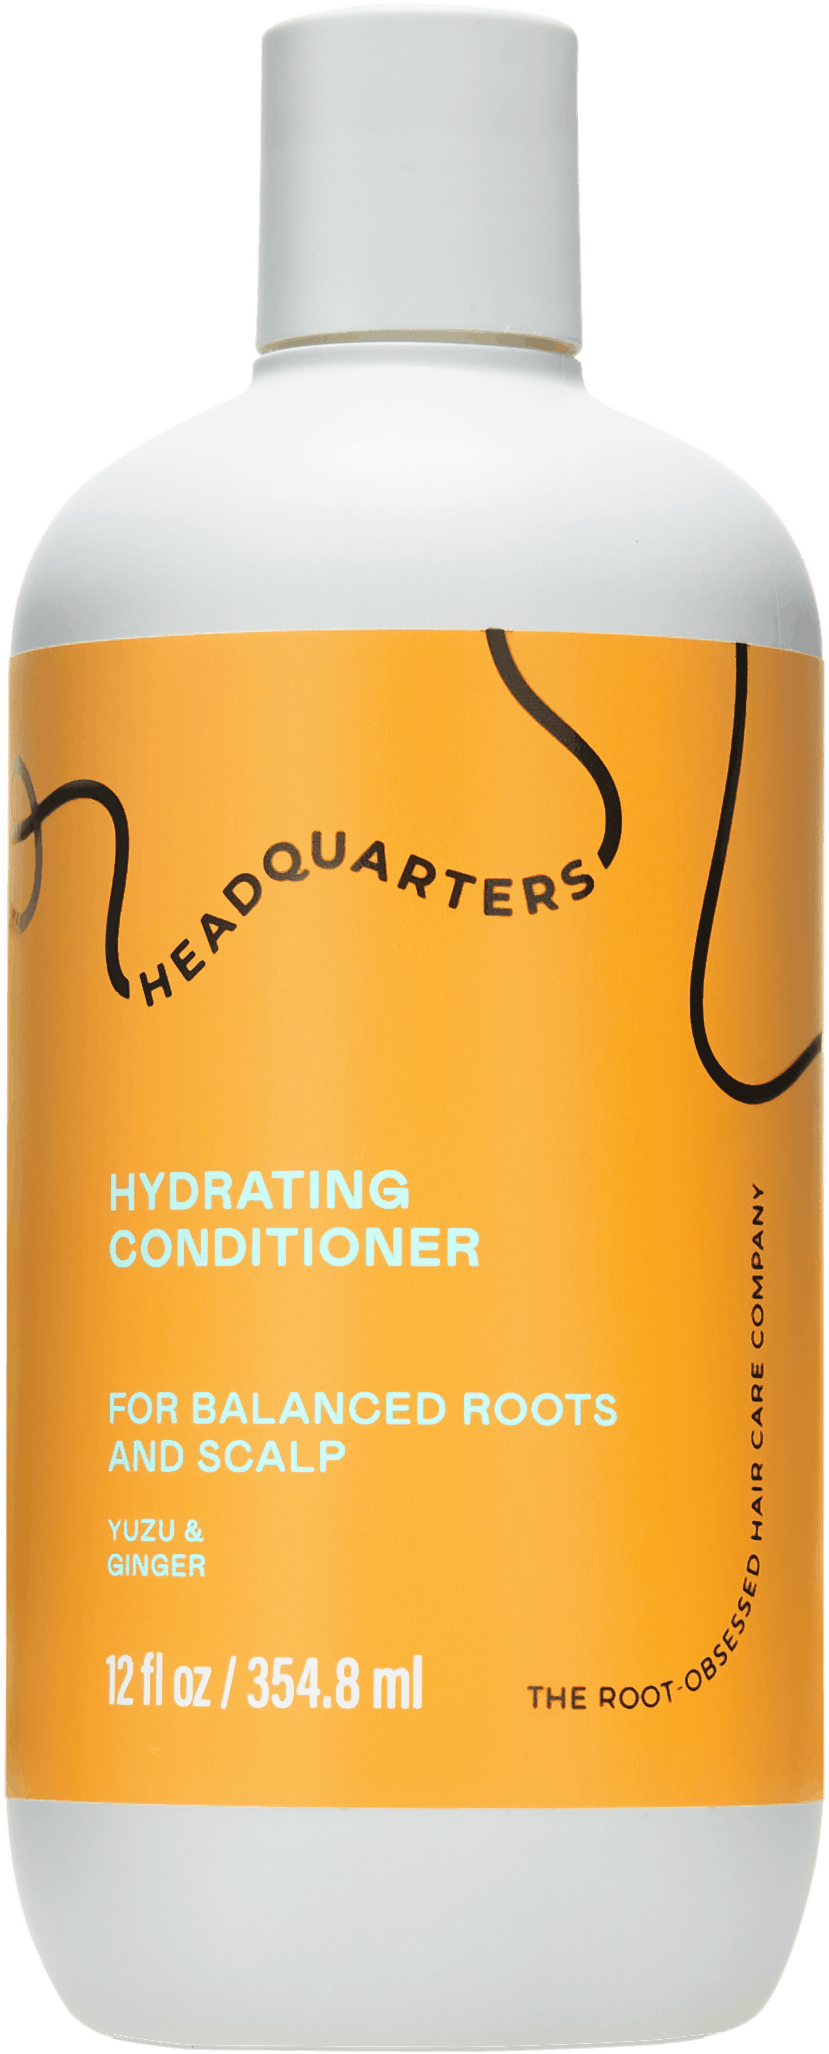 Headquarters Hydrating Conditioner Balanced scalp care bottle